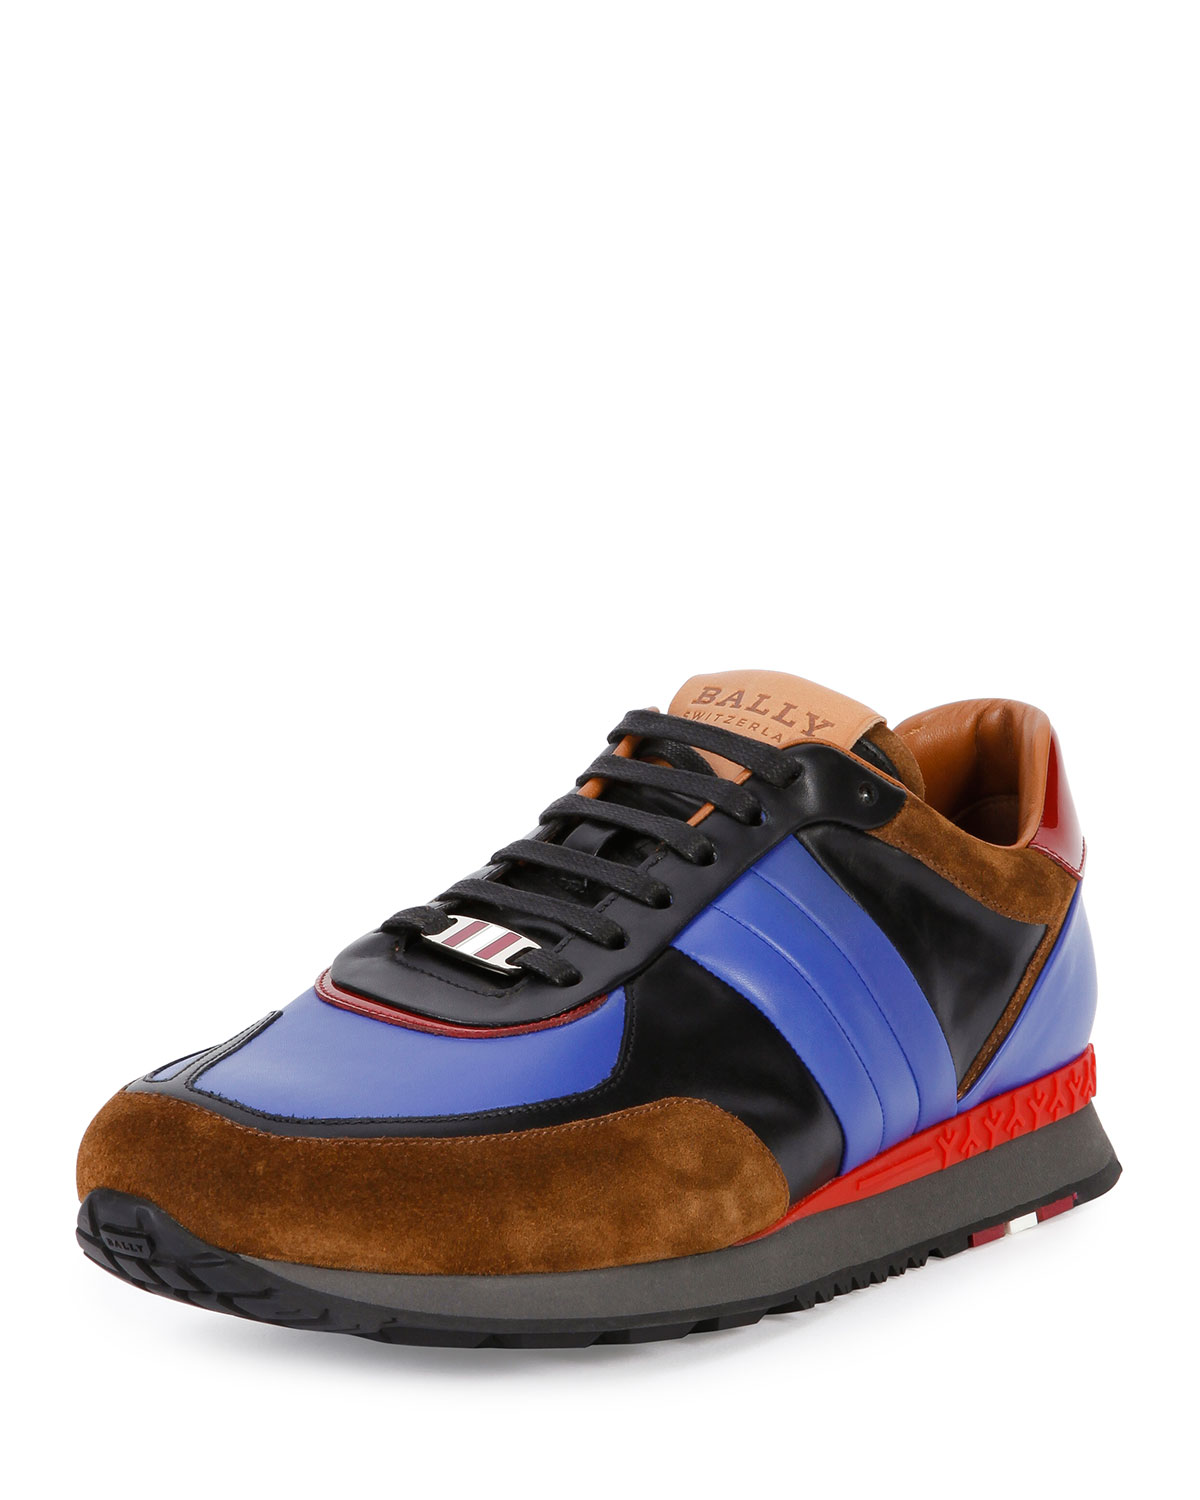 9cdcf2675954 Bally Men s Ascar Multicolored Leather Sneakers